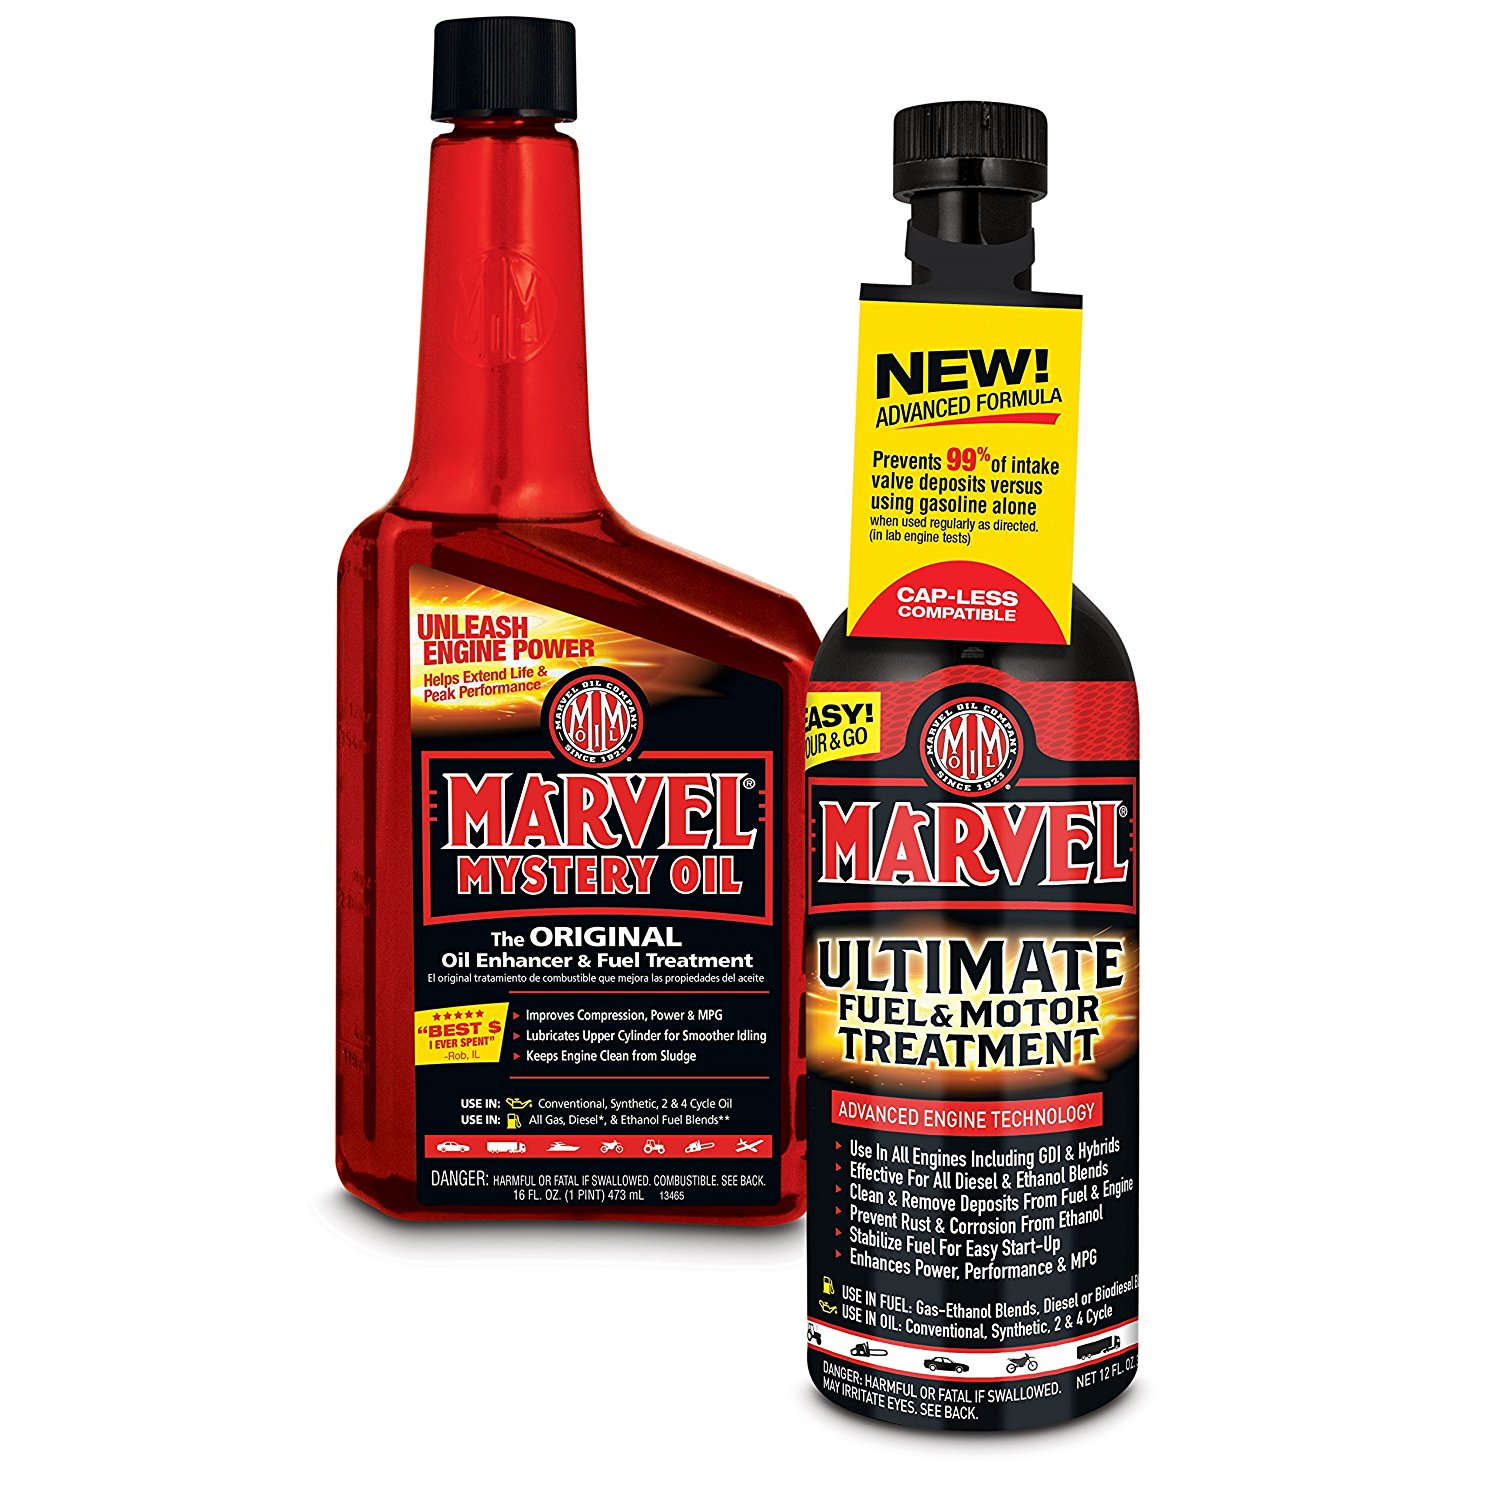 (3 Pack) Marvel Mystery Oil Classic & Marvel Ultimate Fuel & Motor Treatment